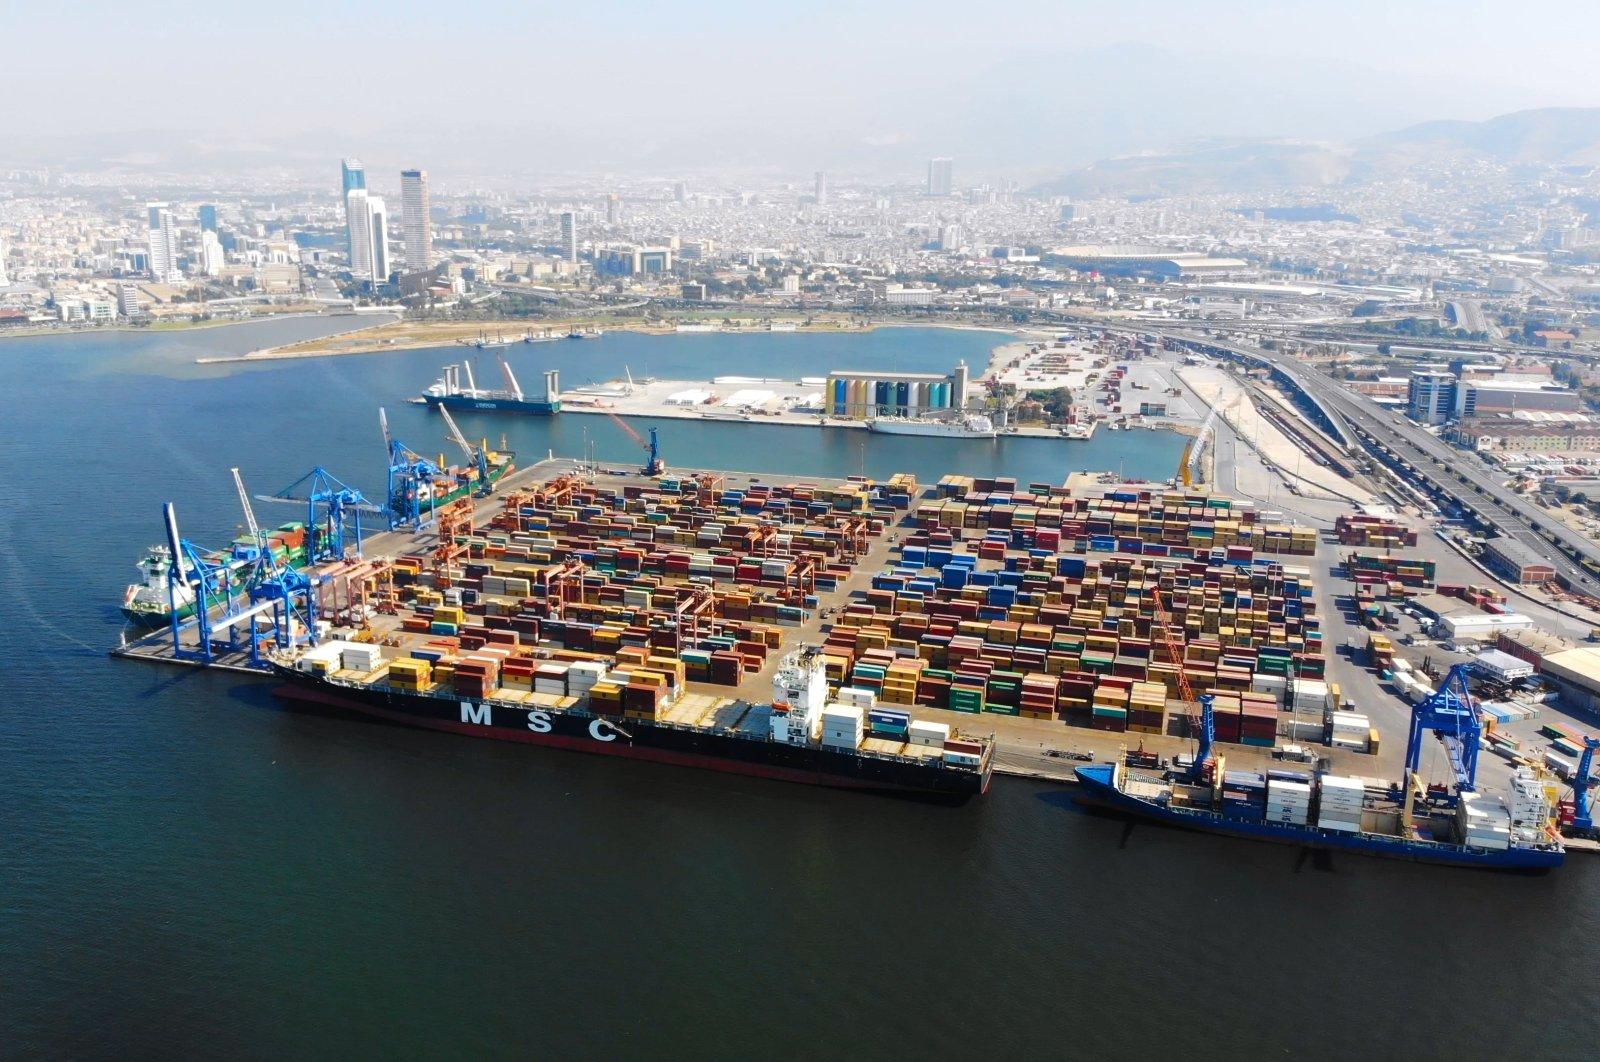 An aerial view of the Port of Izmir in western Turkey, July 10, 2018. (Shutterstock Photo)